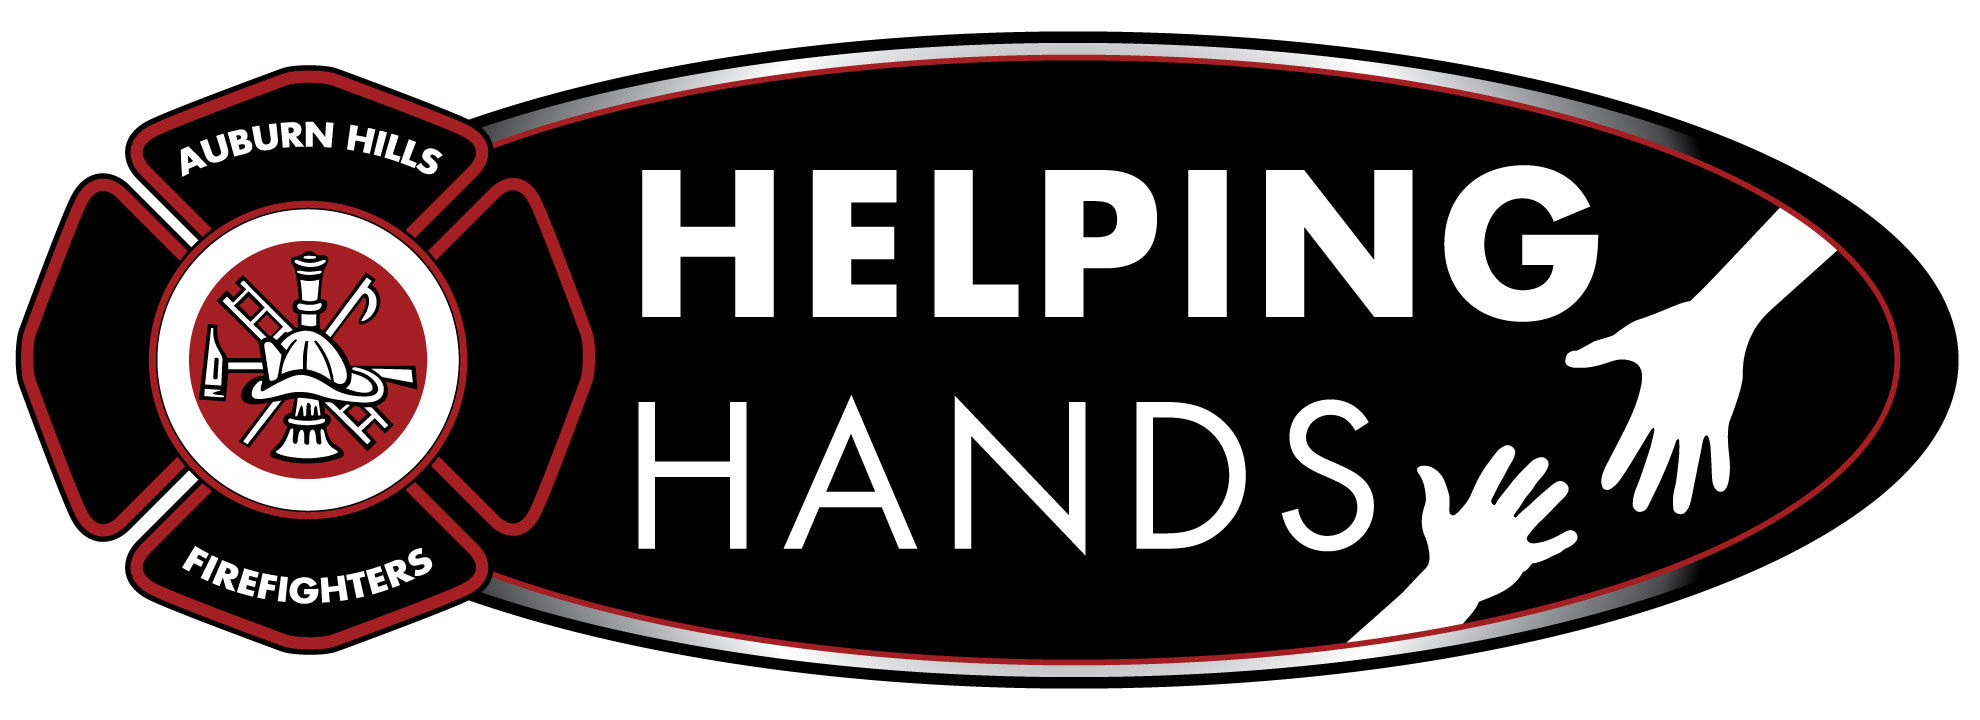 Auburn Hills Firefighters Helping Hands